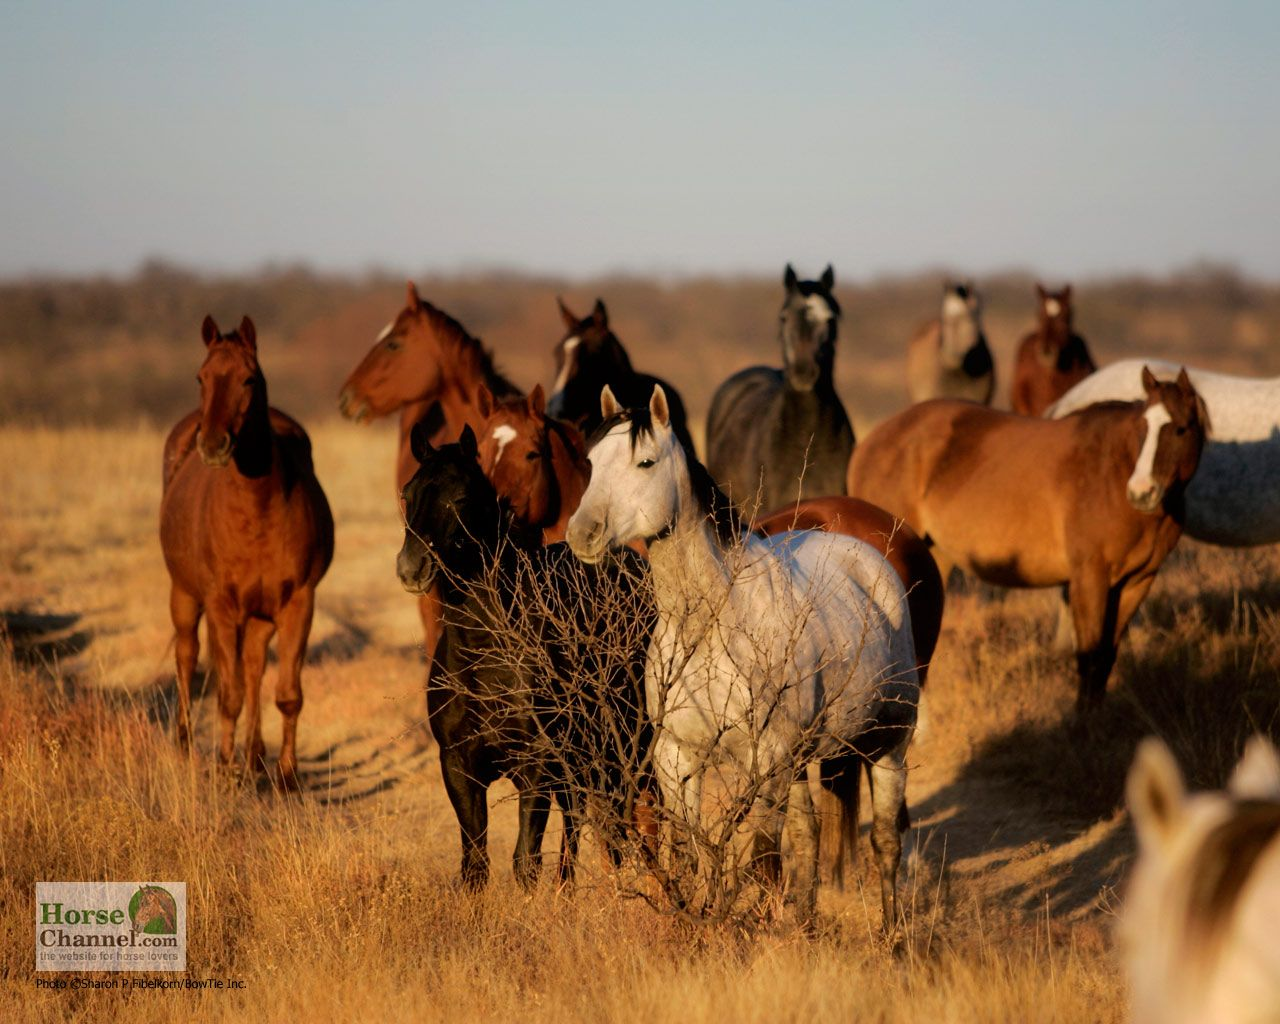 Western Horse Wallpaper For Android #P6m